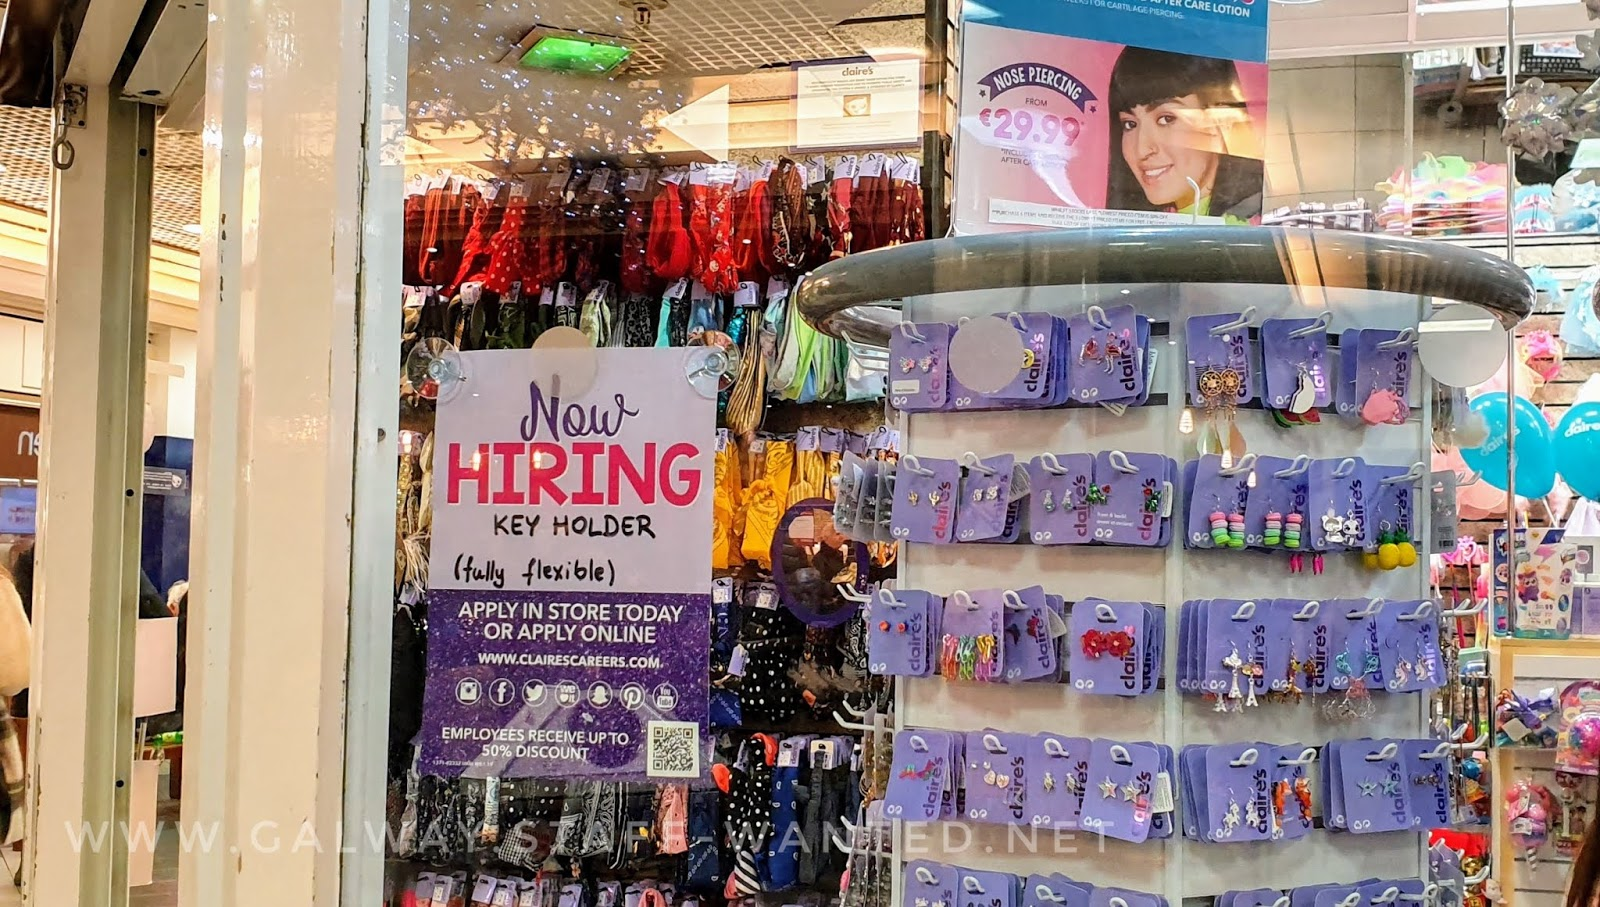 shop widow showign wanted sign - and a rotating earring display with pairs of Claire's own-brand earrings, including Christmas-earrings, displayed on light purple card